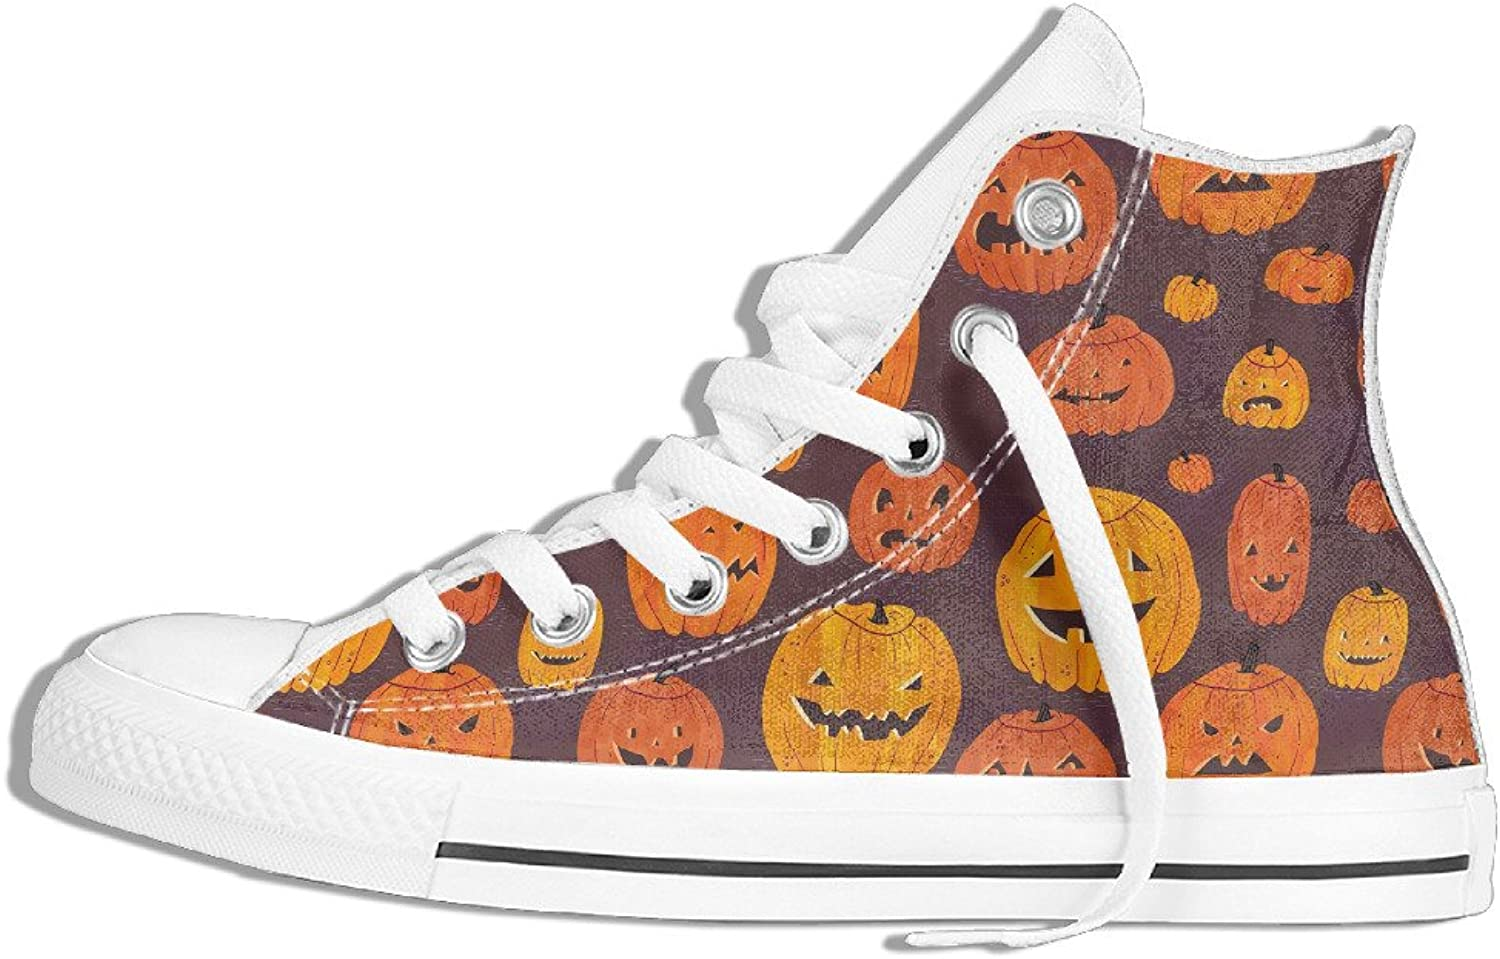 Efbj Spooky Halloween Unisex Unique High Top Sneakers shoes for Men and Women